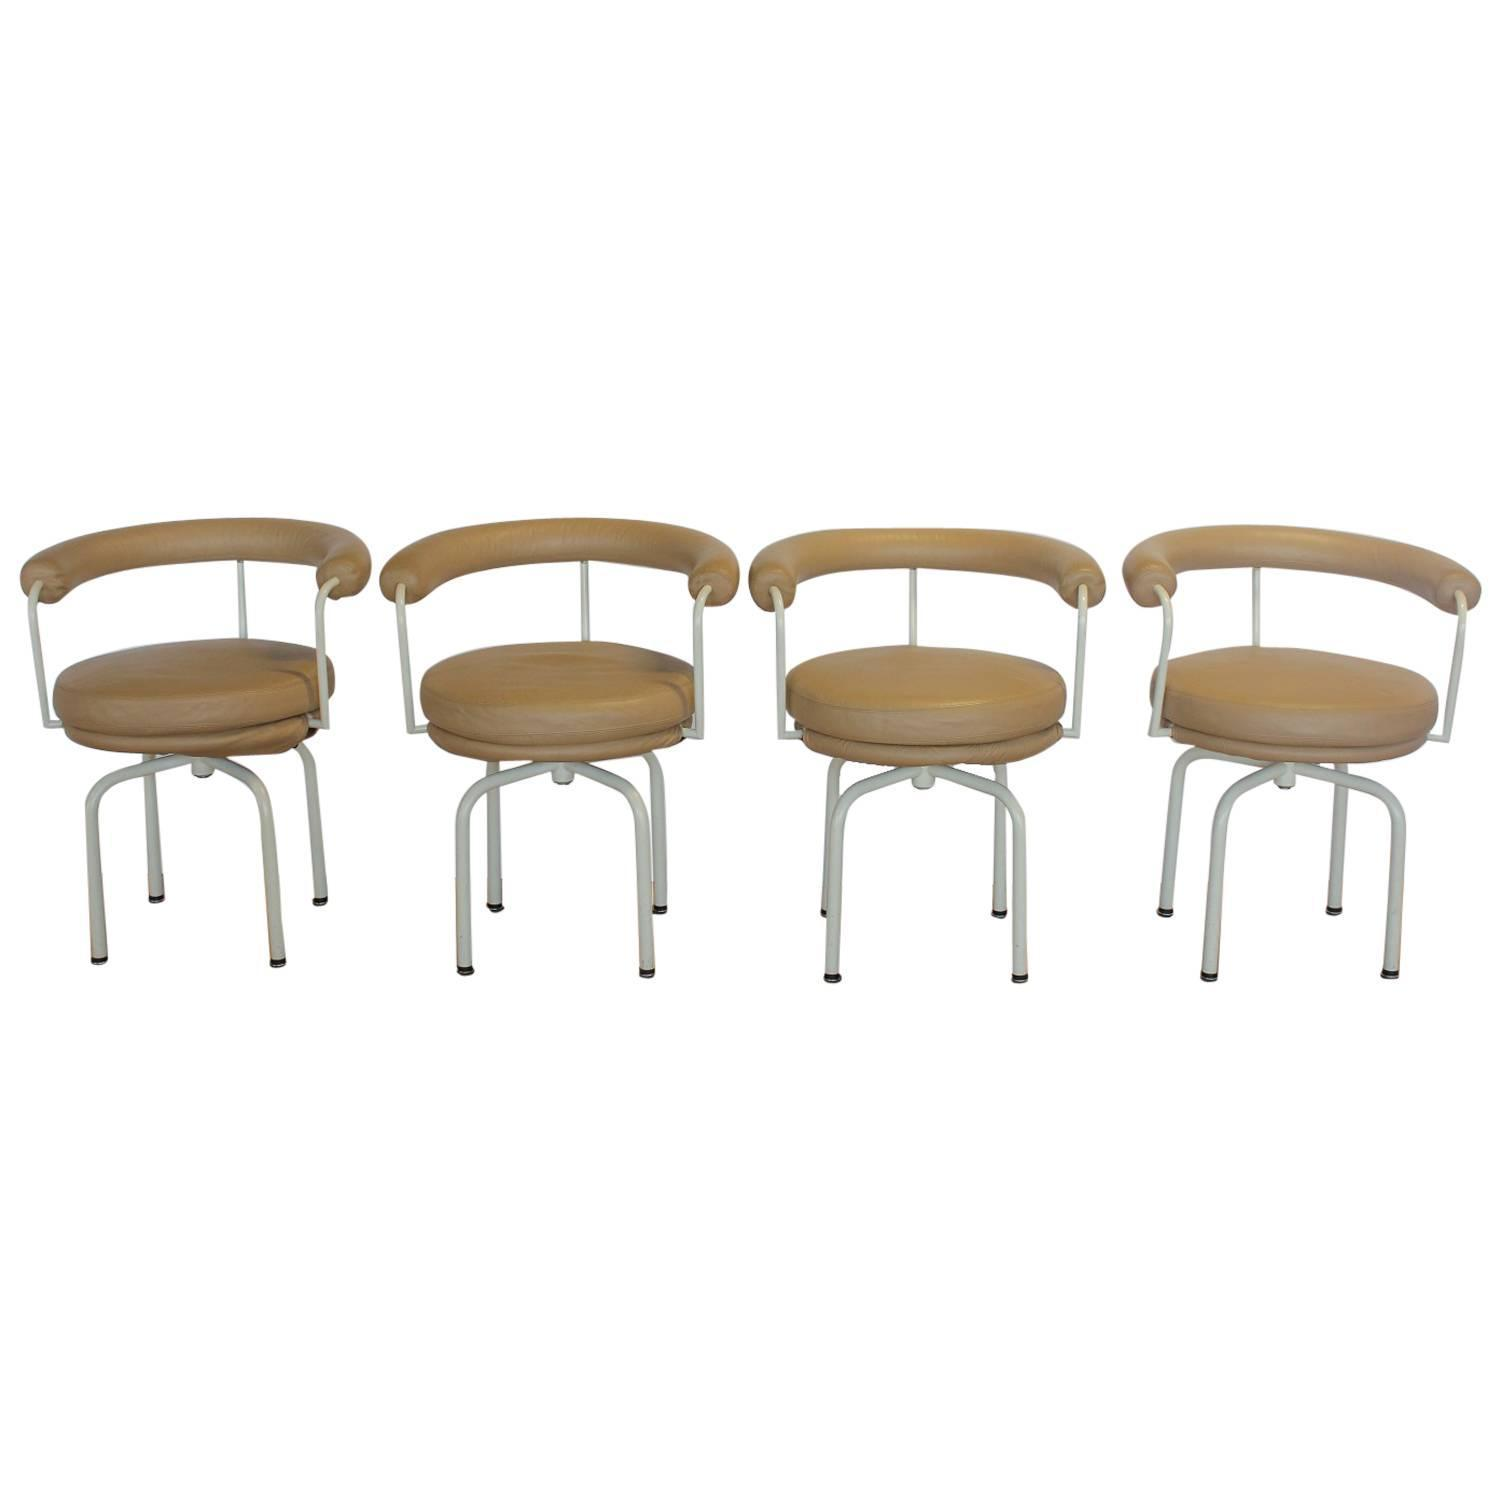 Stylish LC7 Chairs by Pierre Jeanneret Perriand and Le